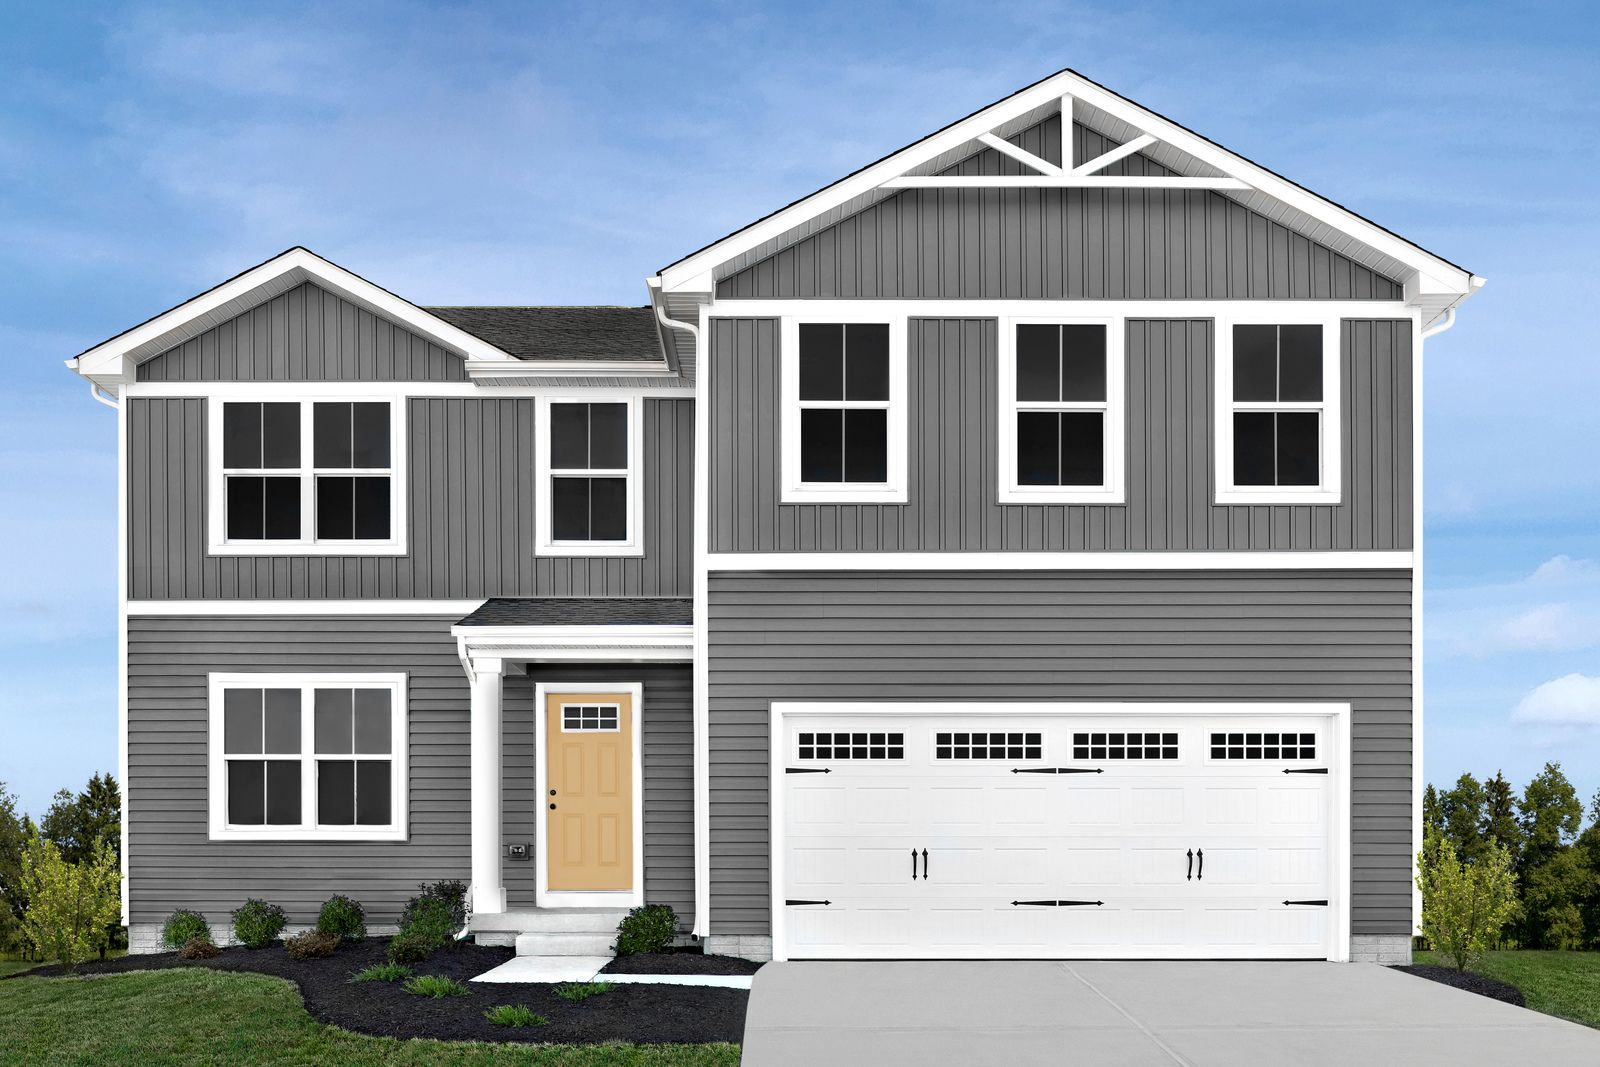 Welcome Home to east new haven:2-story homes with reduced taxes—Summit County's lowest-priced new construction! Upgrade your life on a budget, from low $200s.Click here to schedule your visit today!